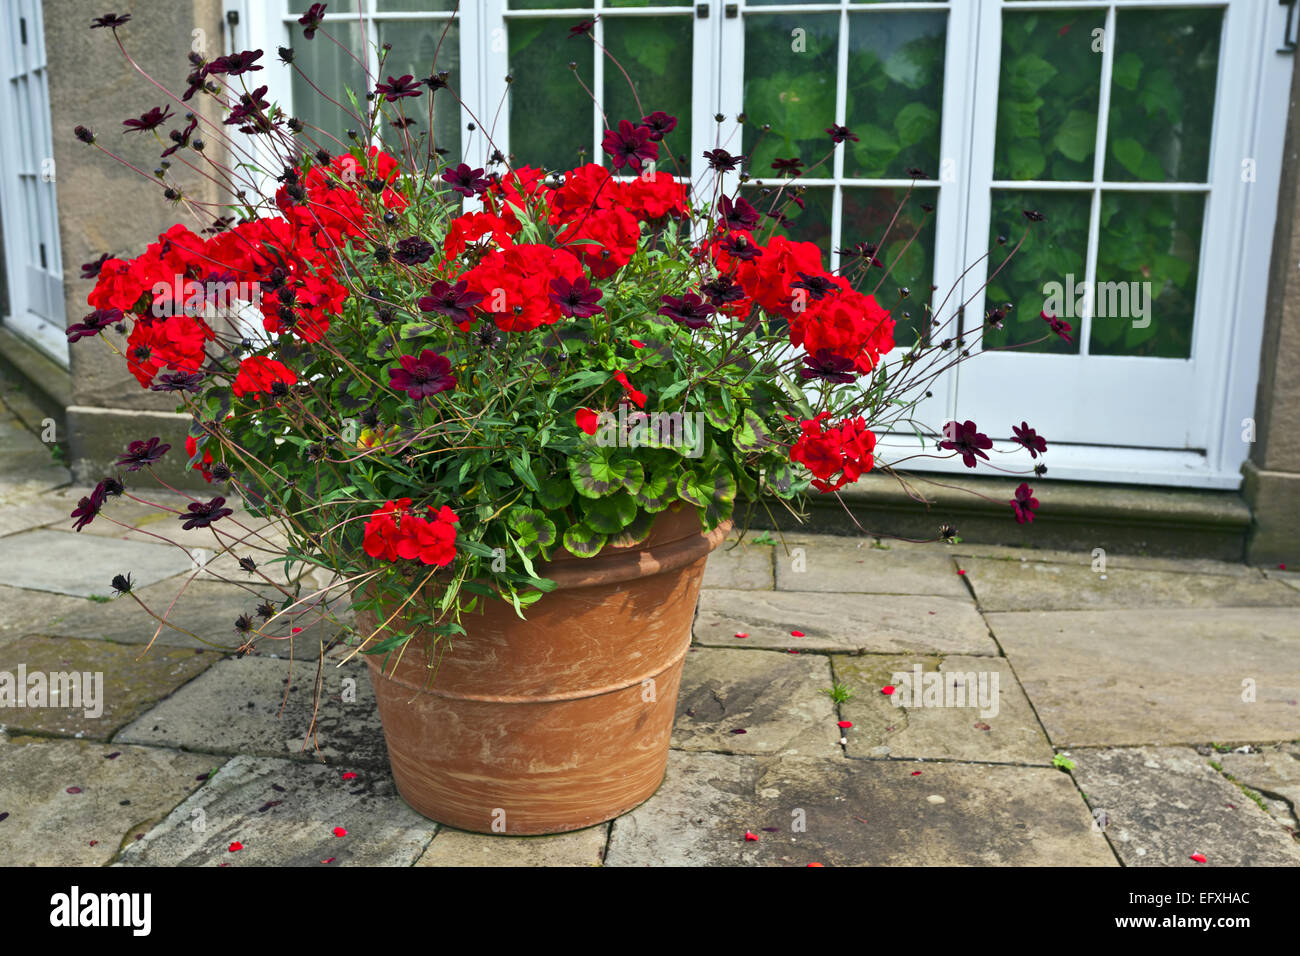 Large terracotta planter with red geraniums and chocolate cosmos flowers. - Stock Image